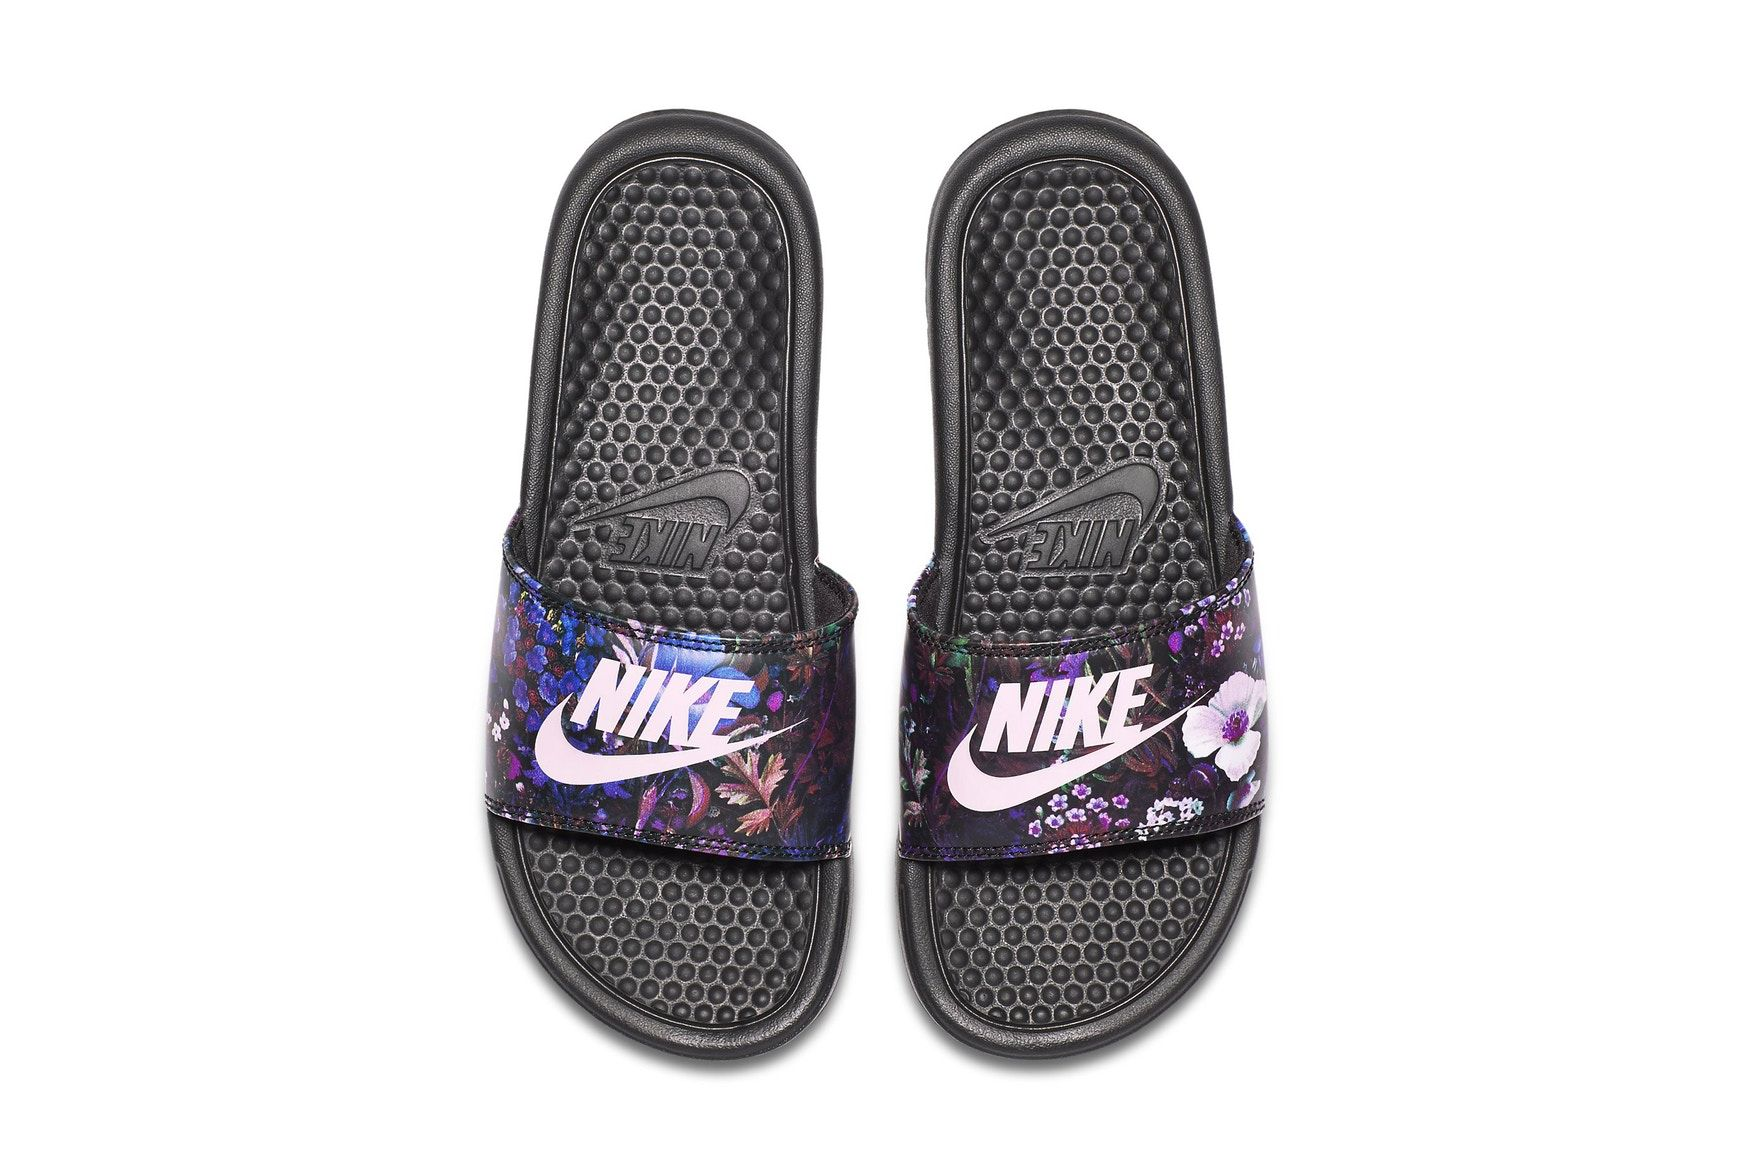 Nike's Benassi Slides Are Blooming With Florals